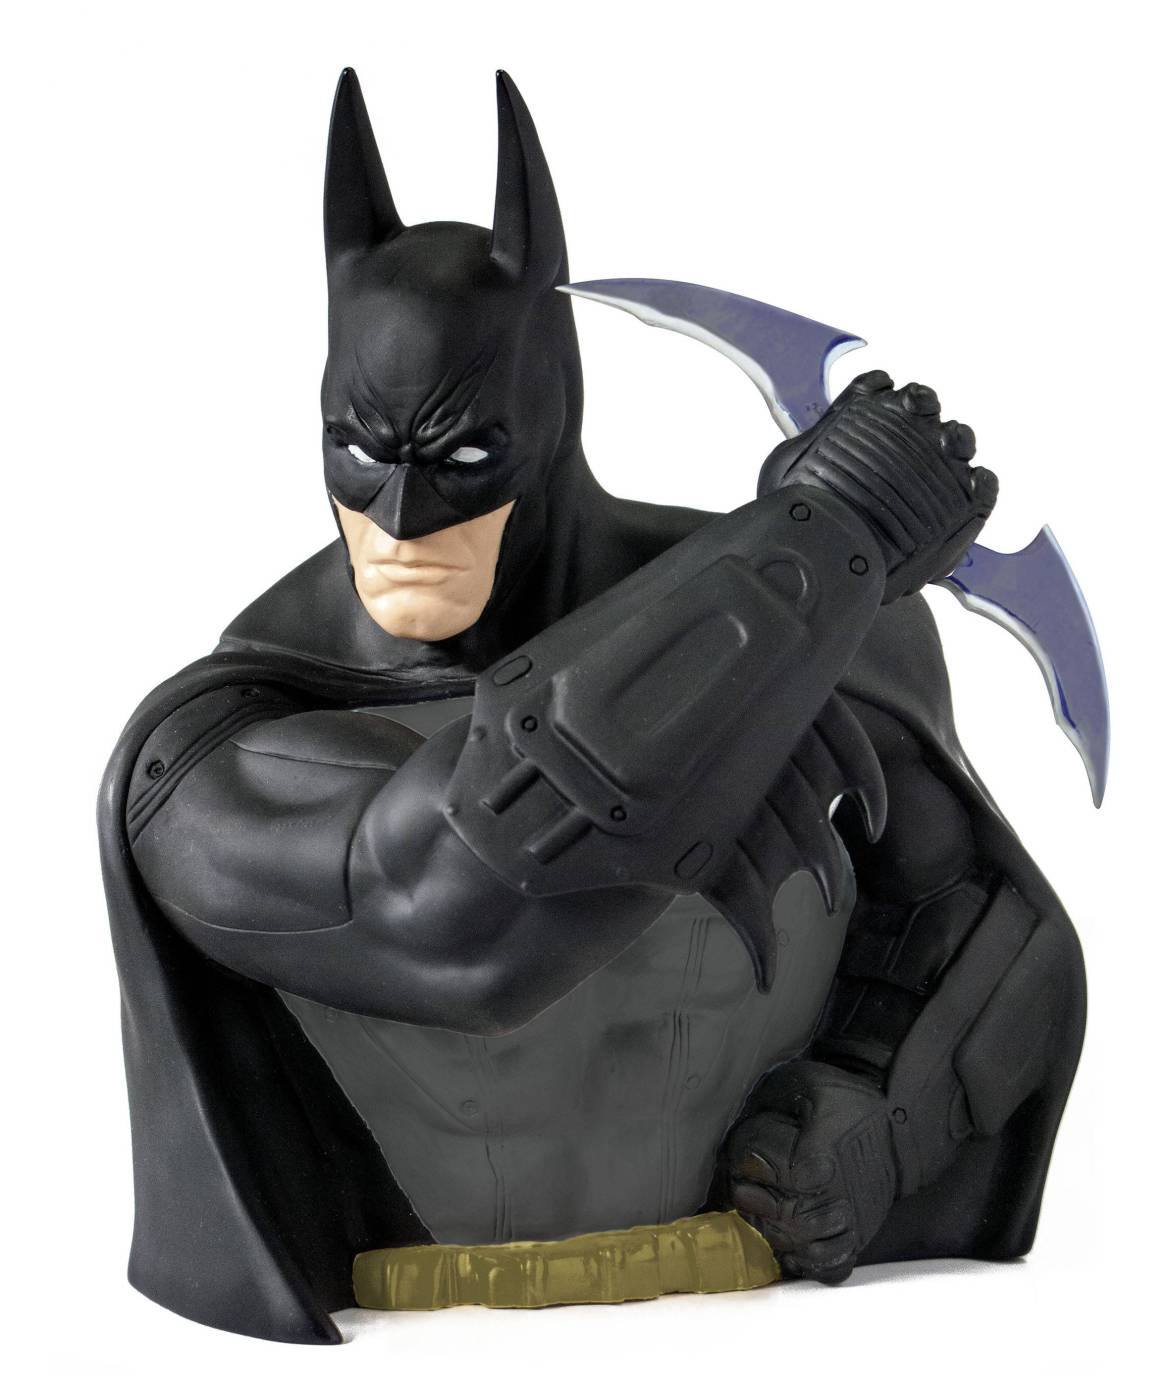 BatmanBustBank PREVIEWS offers a trio of exclusive new Bust Banks